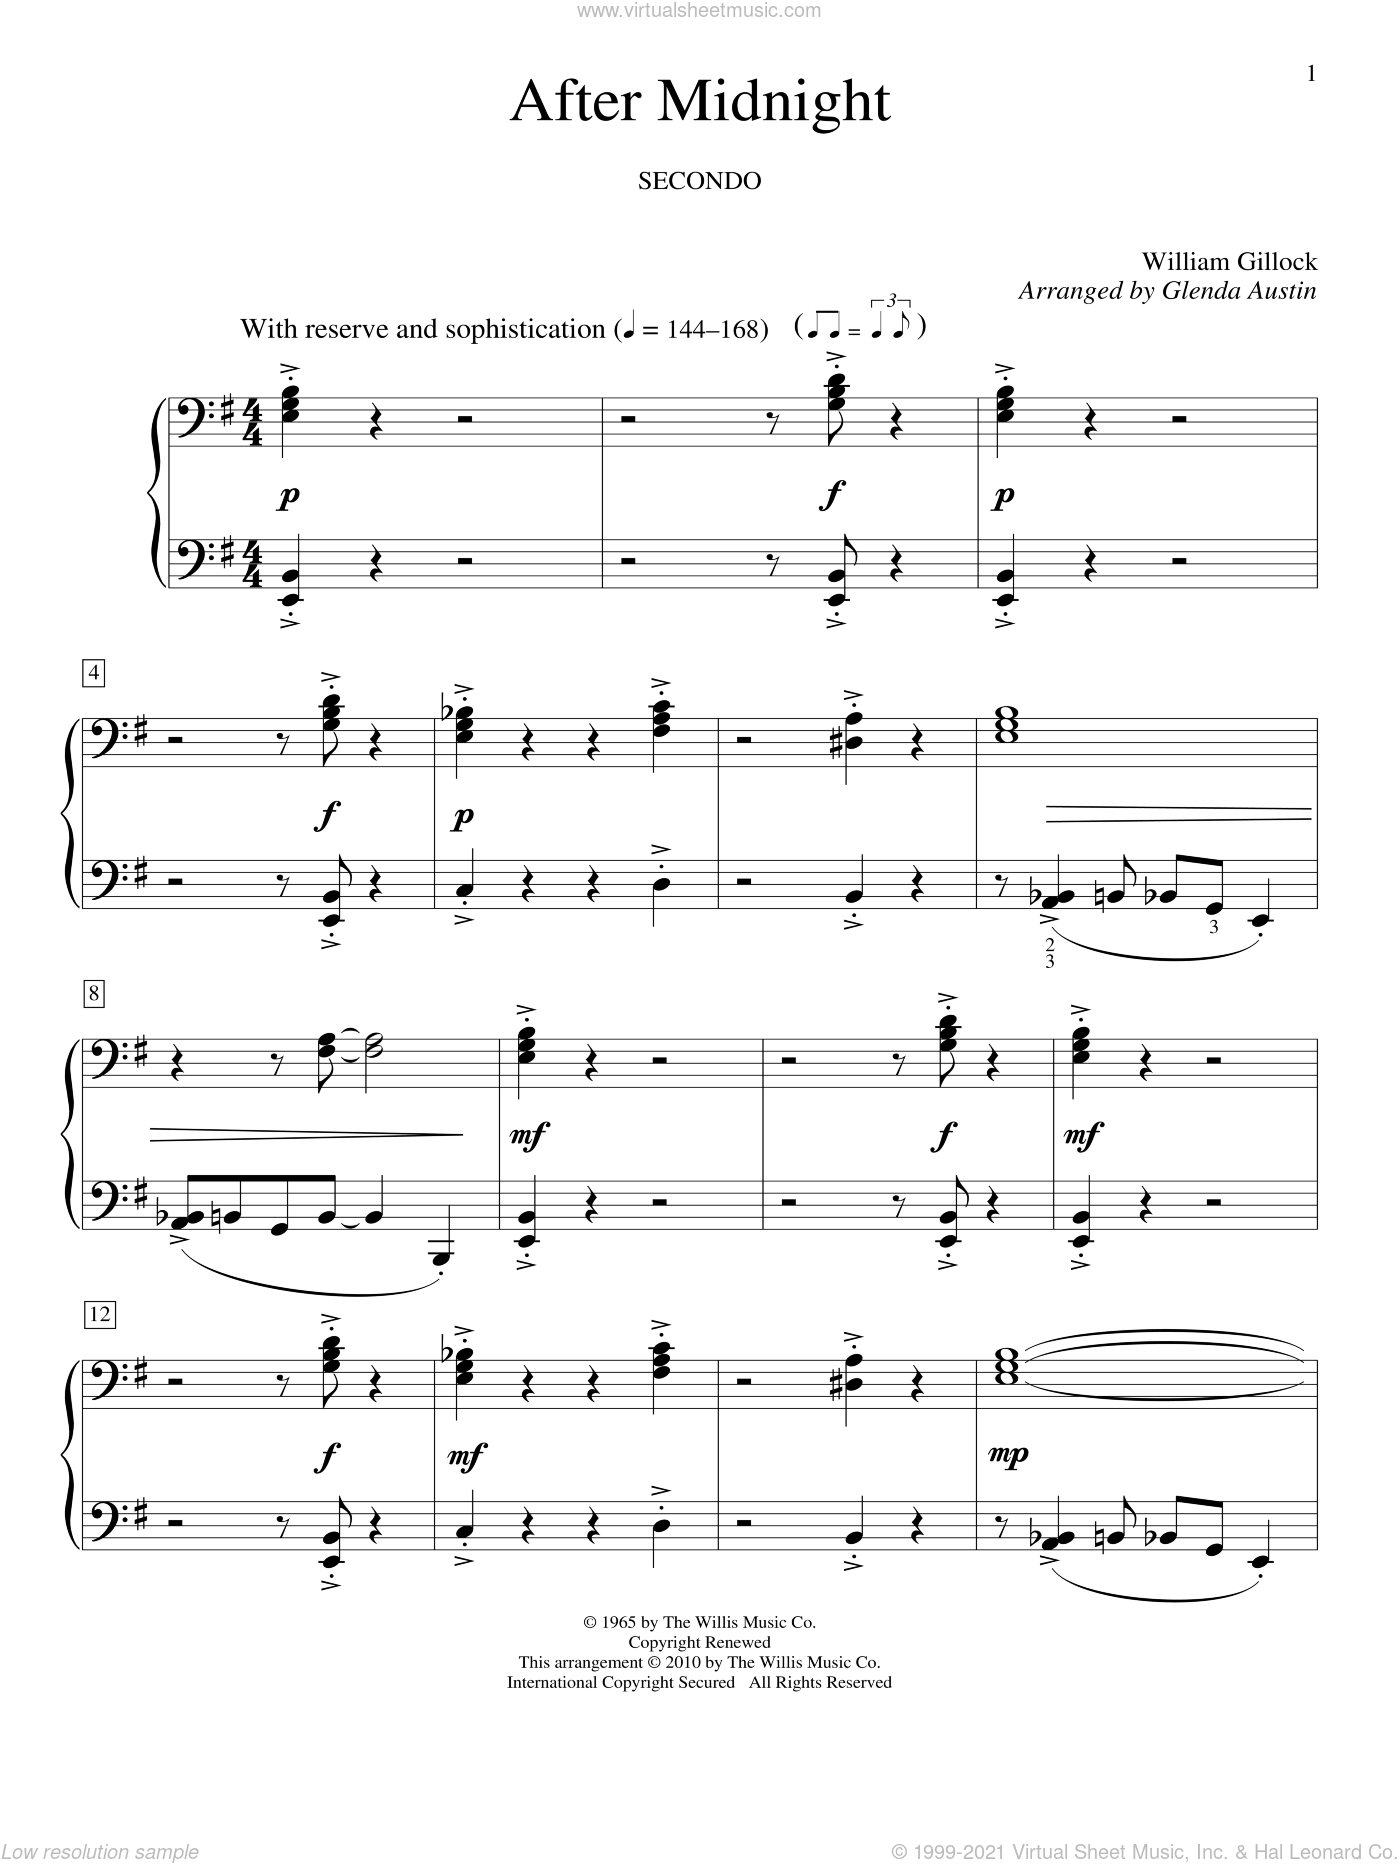 After Midnight sheet music for piano four hands (duets) by William Gillock